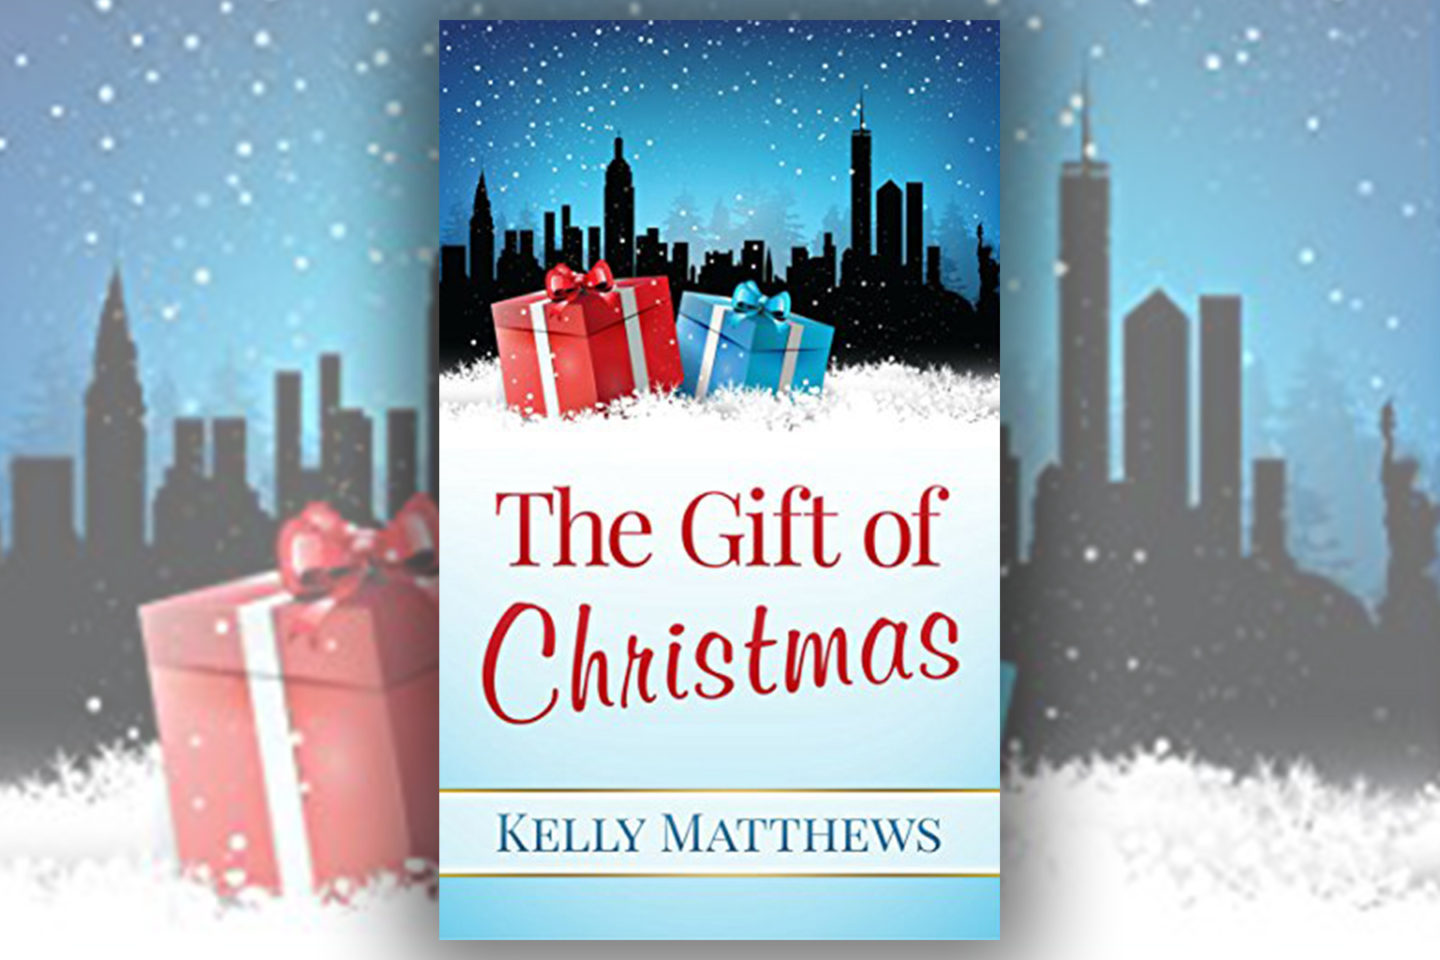 Review: The Gift of Christmas